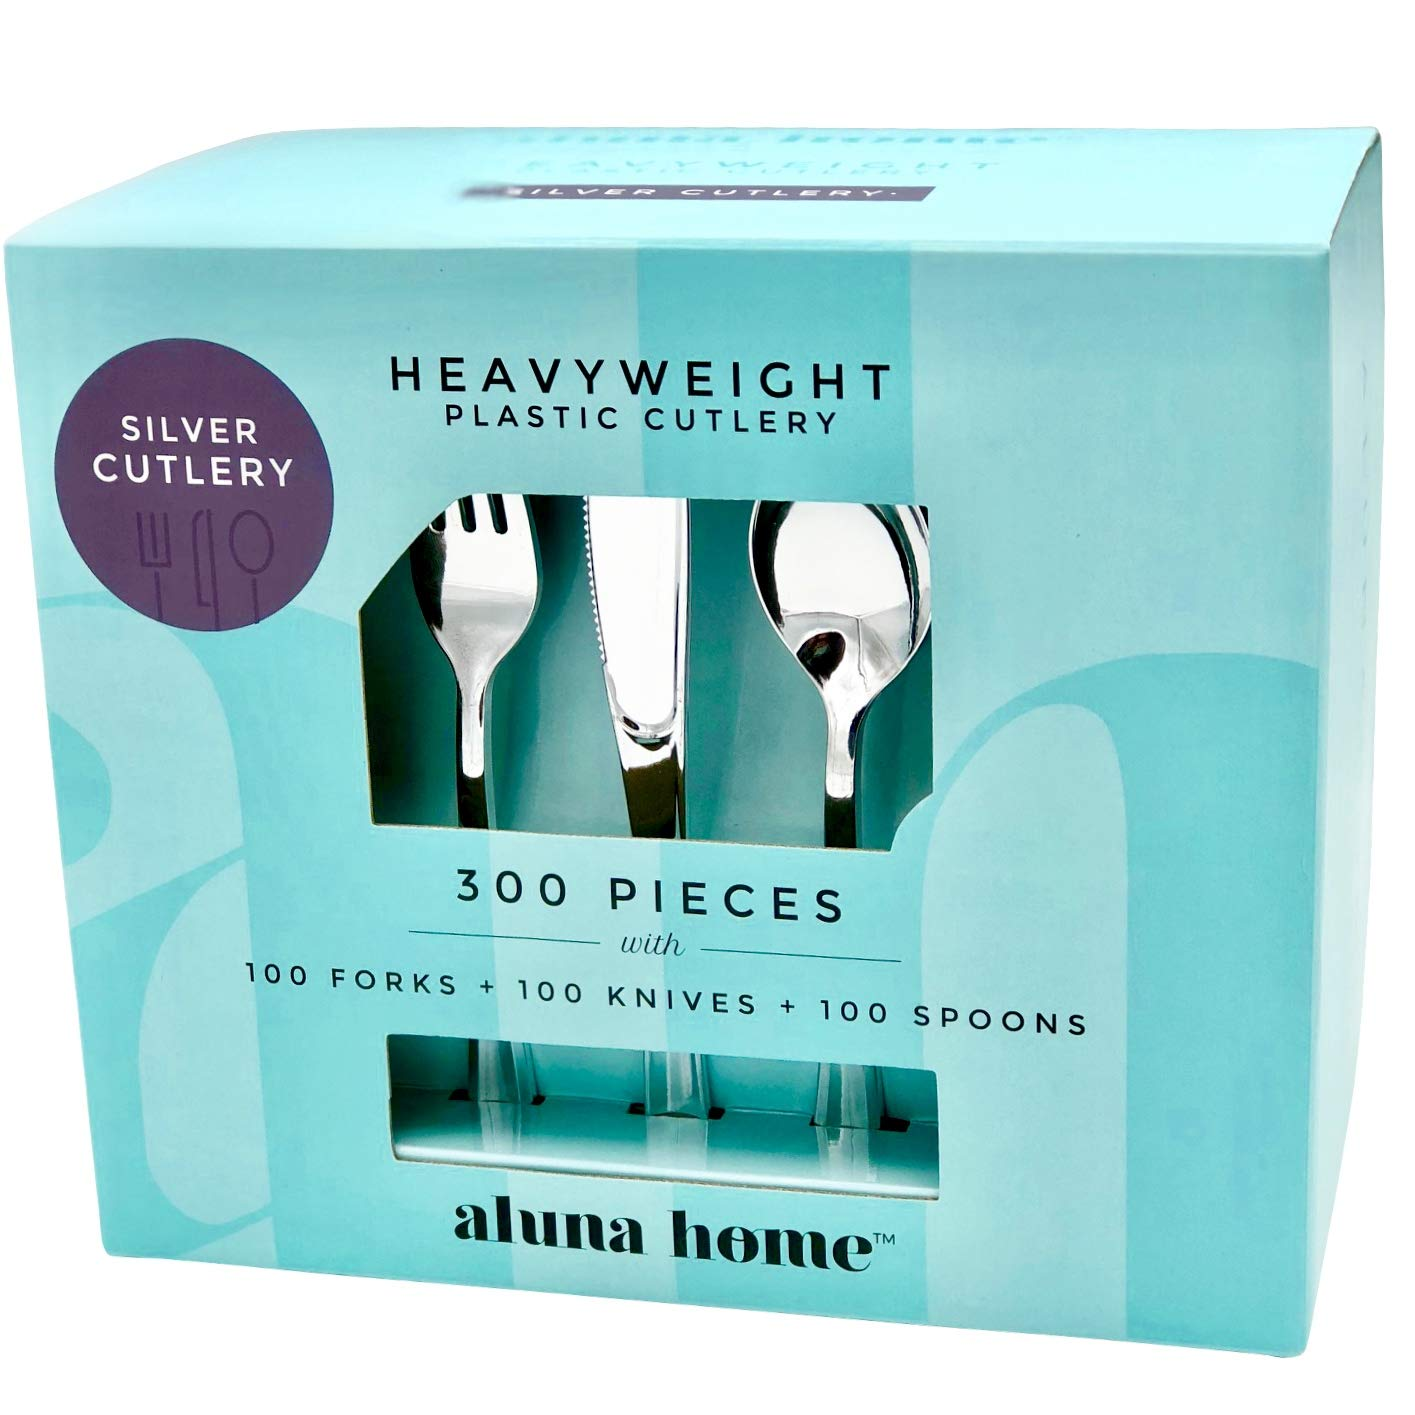 ALUNA HOME | Premium 300 Piece Silver Plastic Cutlery Set - Heavyweight Full Size Disposable Silverware - Elegant BPA-Free Flatware - Includes 100 Forks, 100 Knives and 100 Spoons